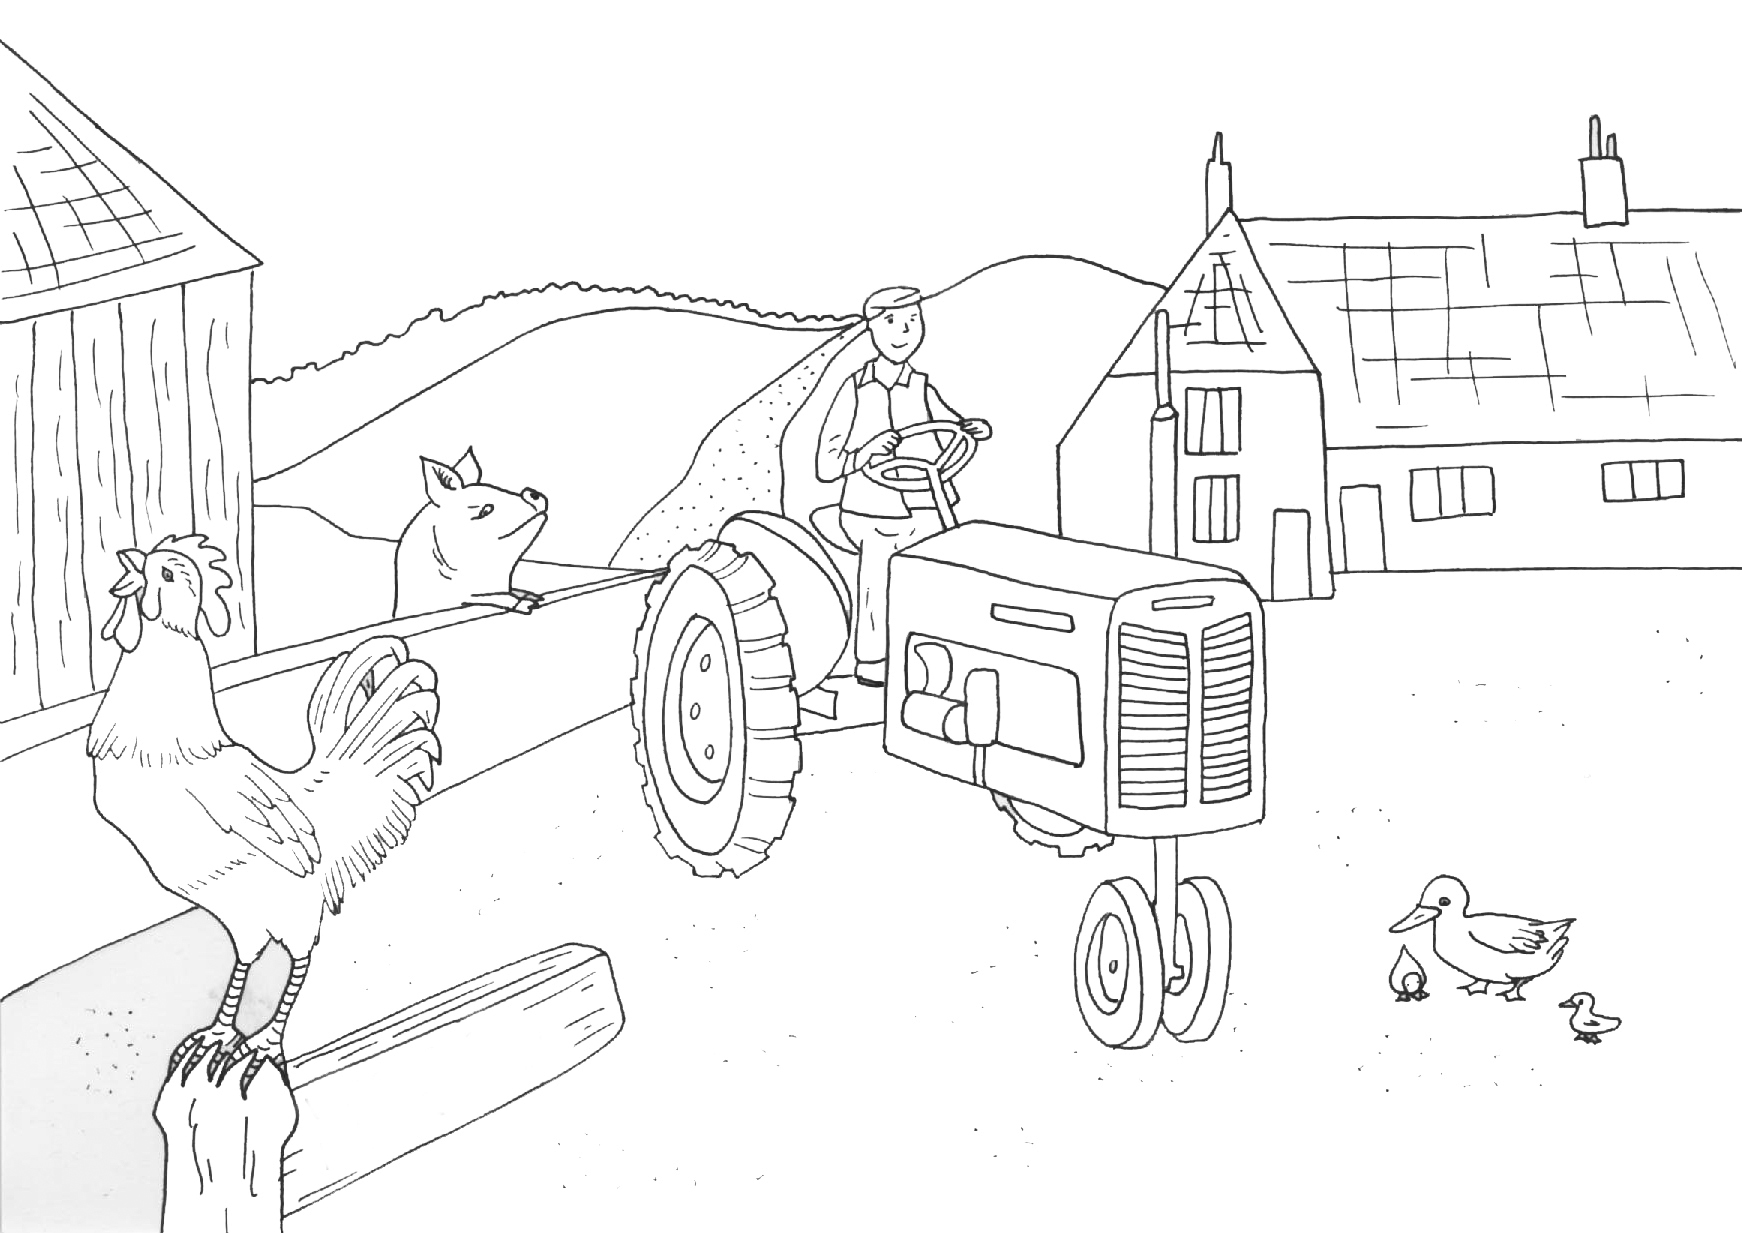 Country Scenes Coloring Pages at GetDrawings.com | Free for personal ...